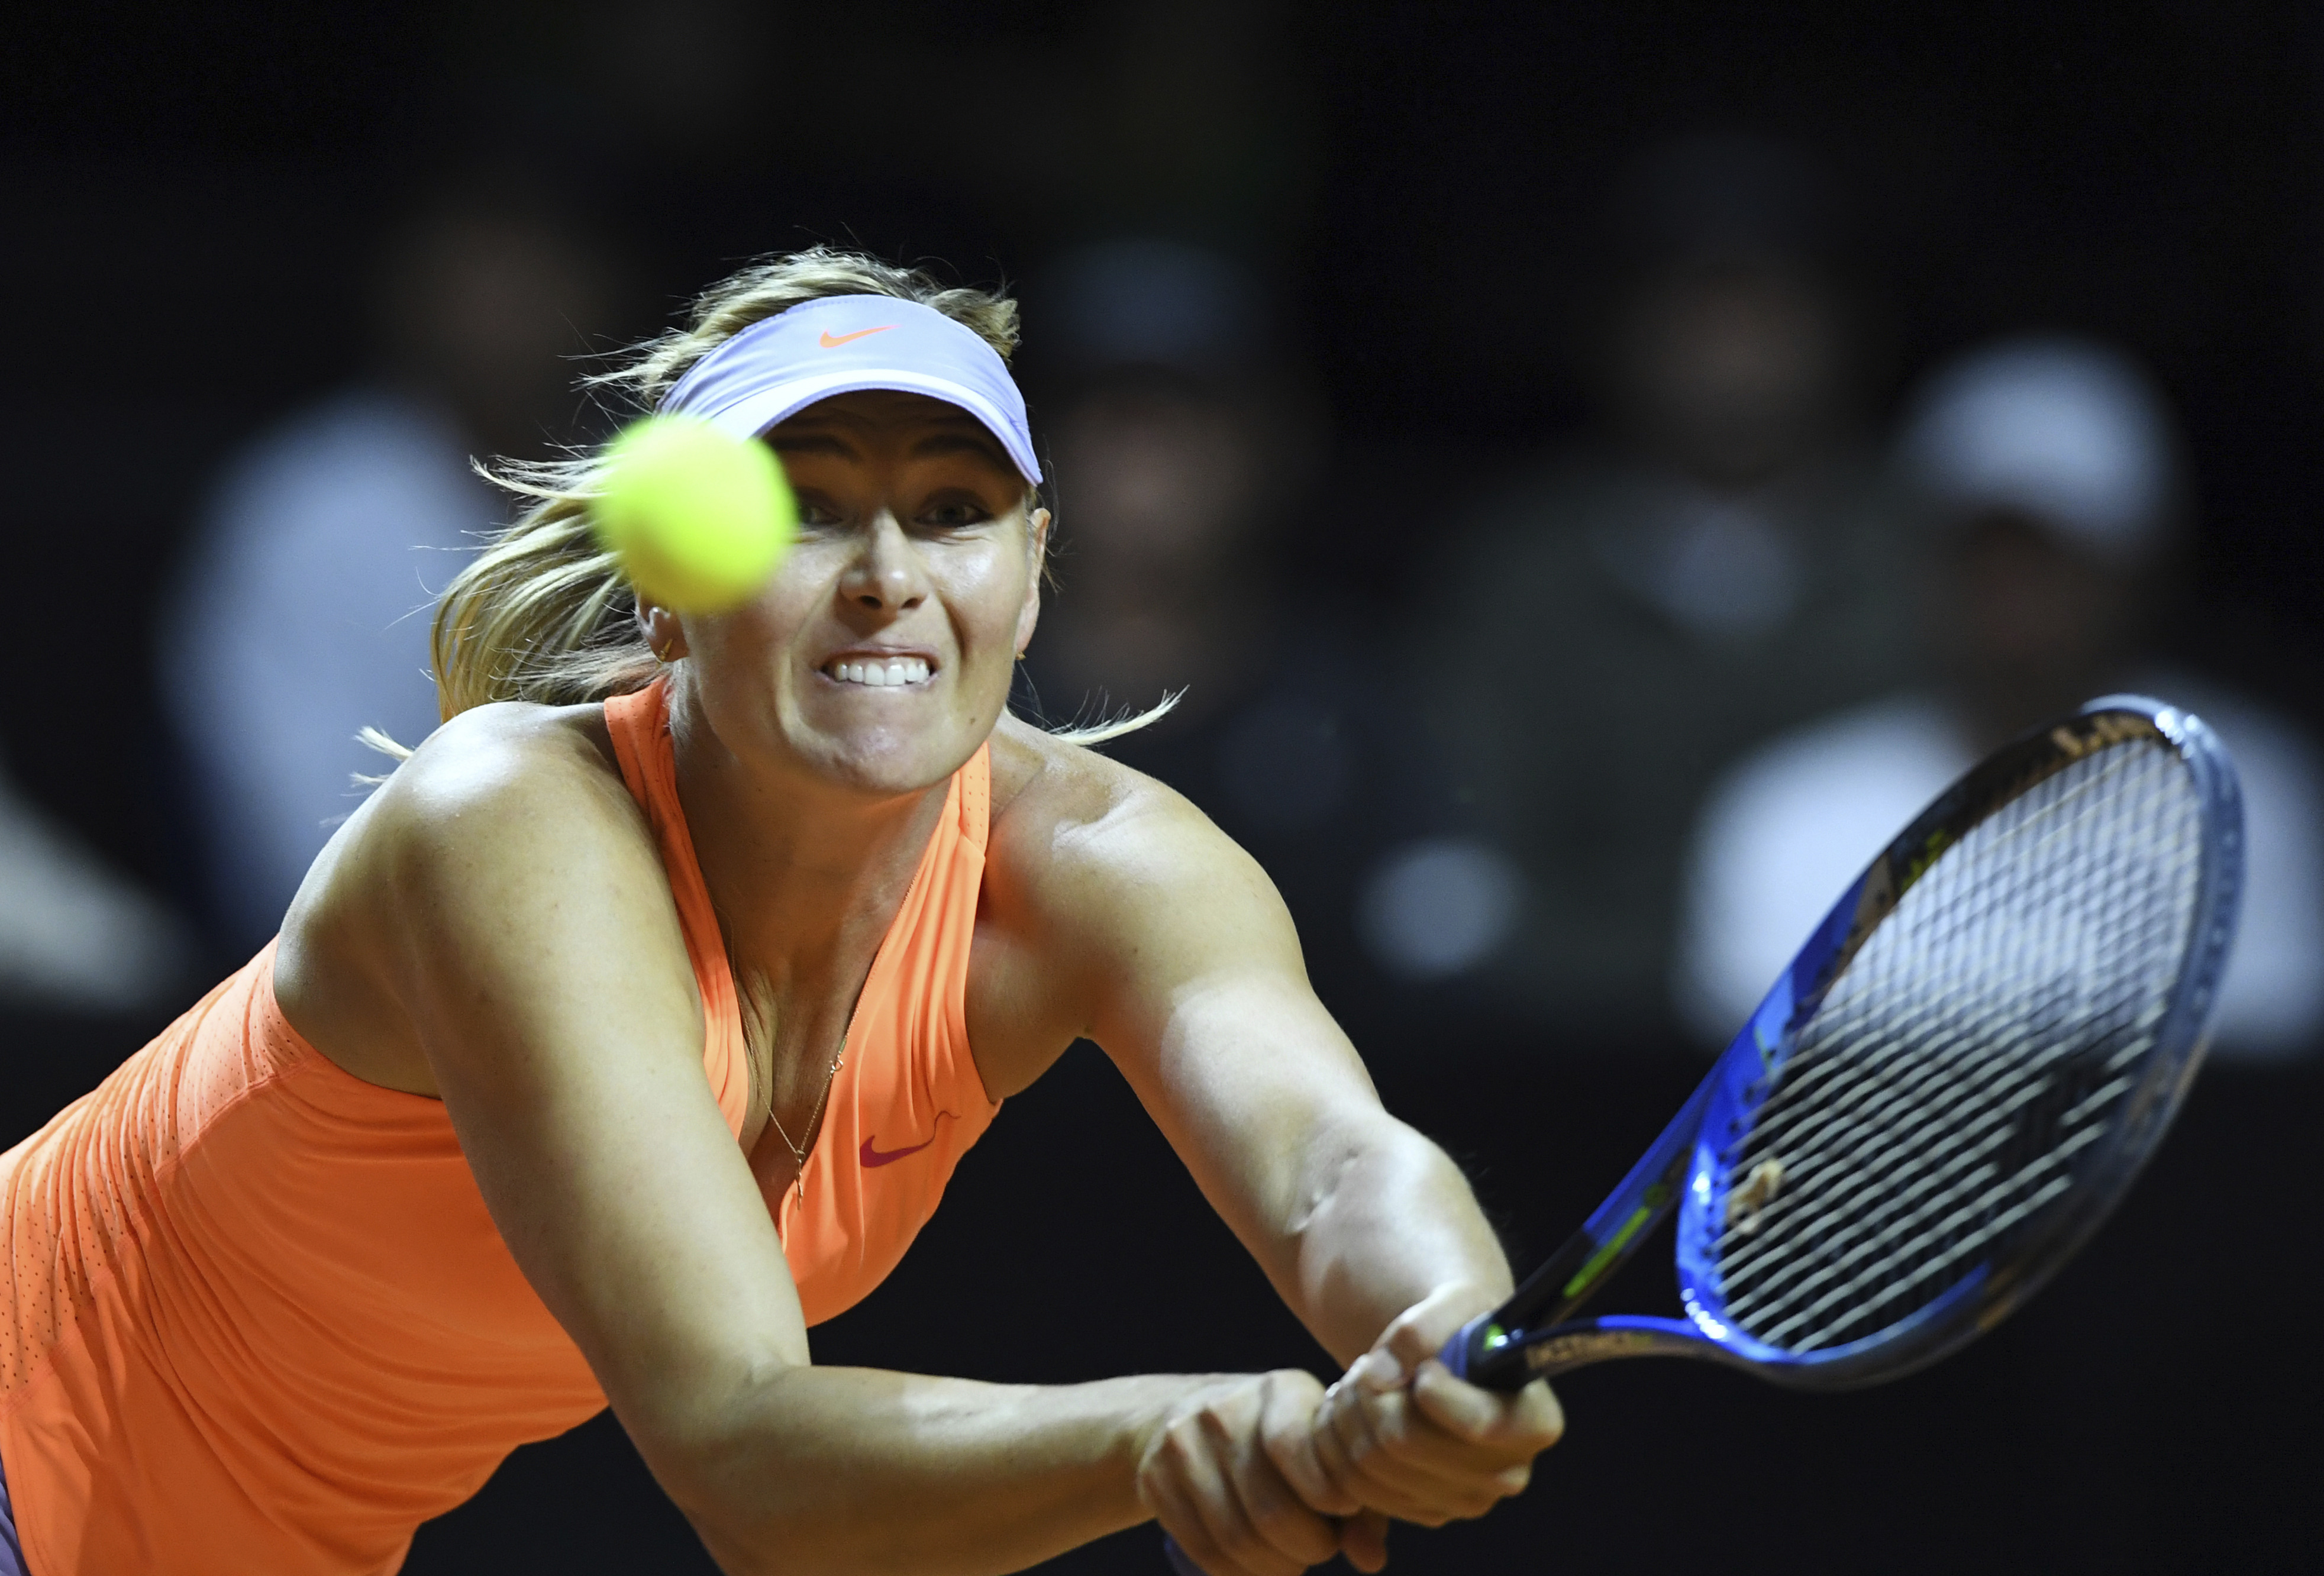 Russia's Maria Sharapova returns the ball to Estonia's Anett Kontaveit during their quarterfinal match at the WTA tennis tournament in Stuttgart, Germany, Friday, April 28, 2017. (Bernd Weissbrod/dpa via AP)